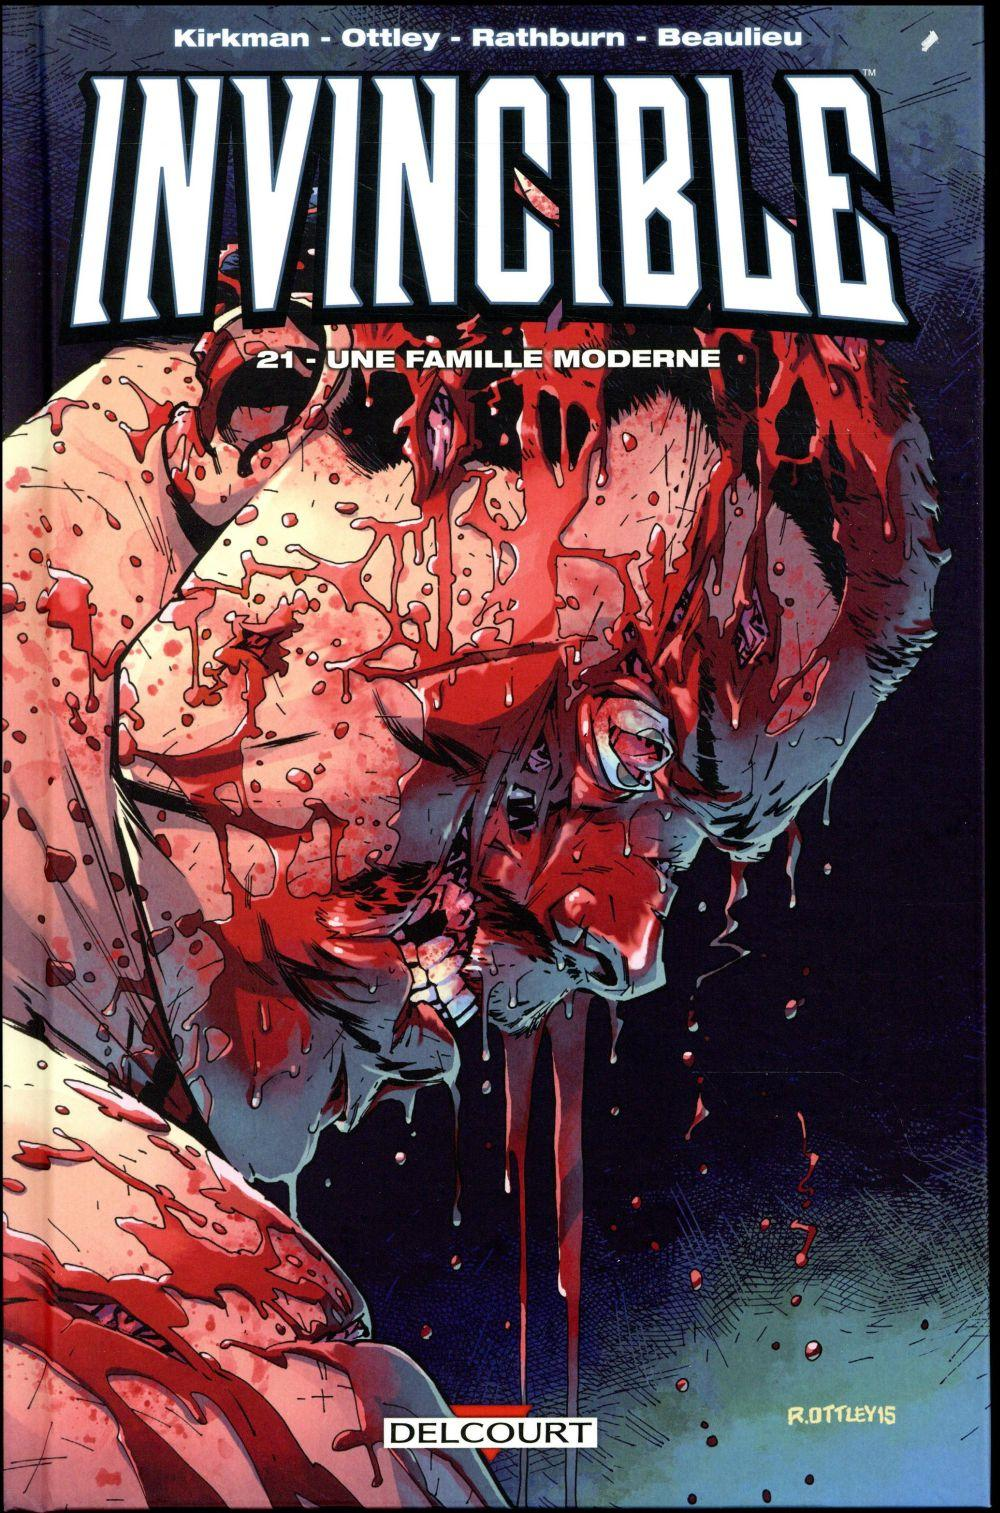 Invincible T.21 ; une famille moderne  - Robert Kirkman  - Ryan Ottley  - Jimmy Beaulieu  - Cliff Rathburn